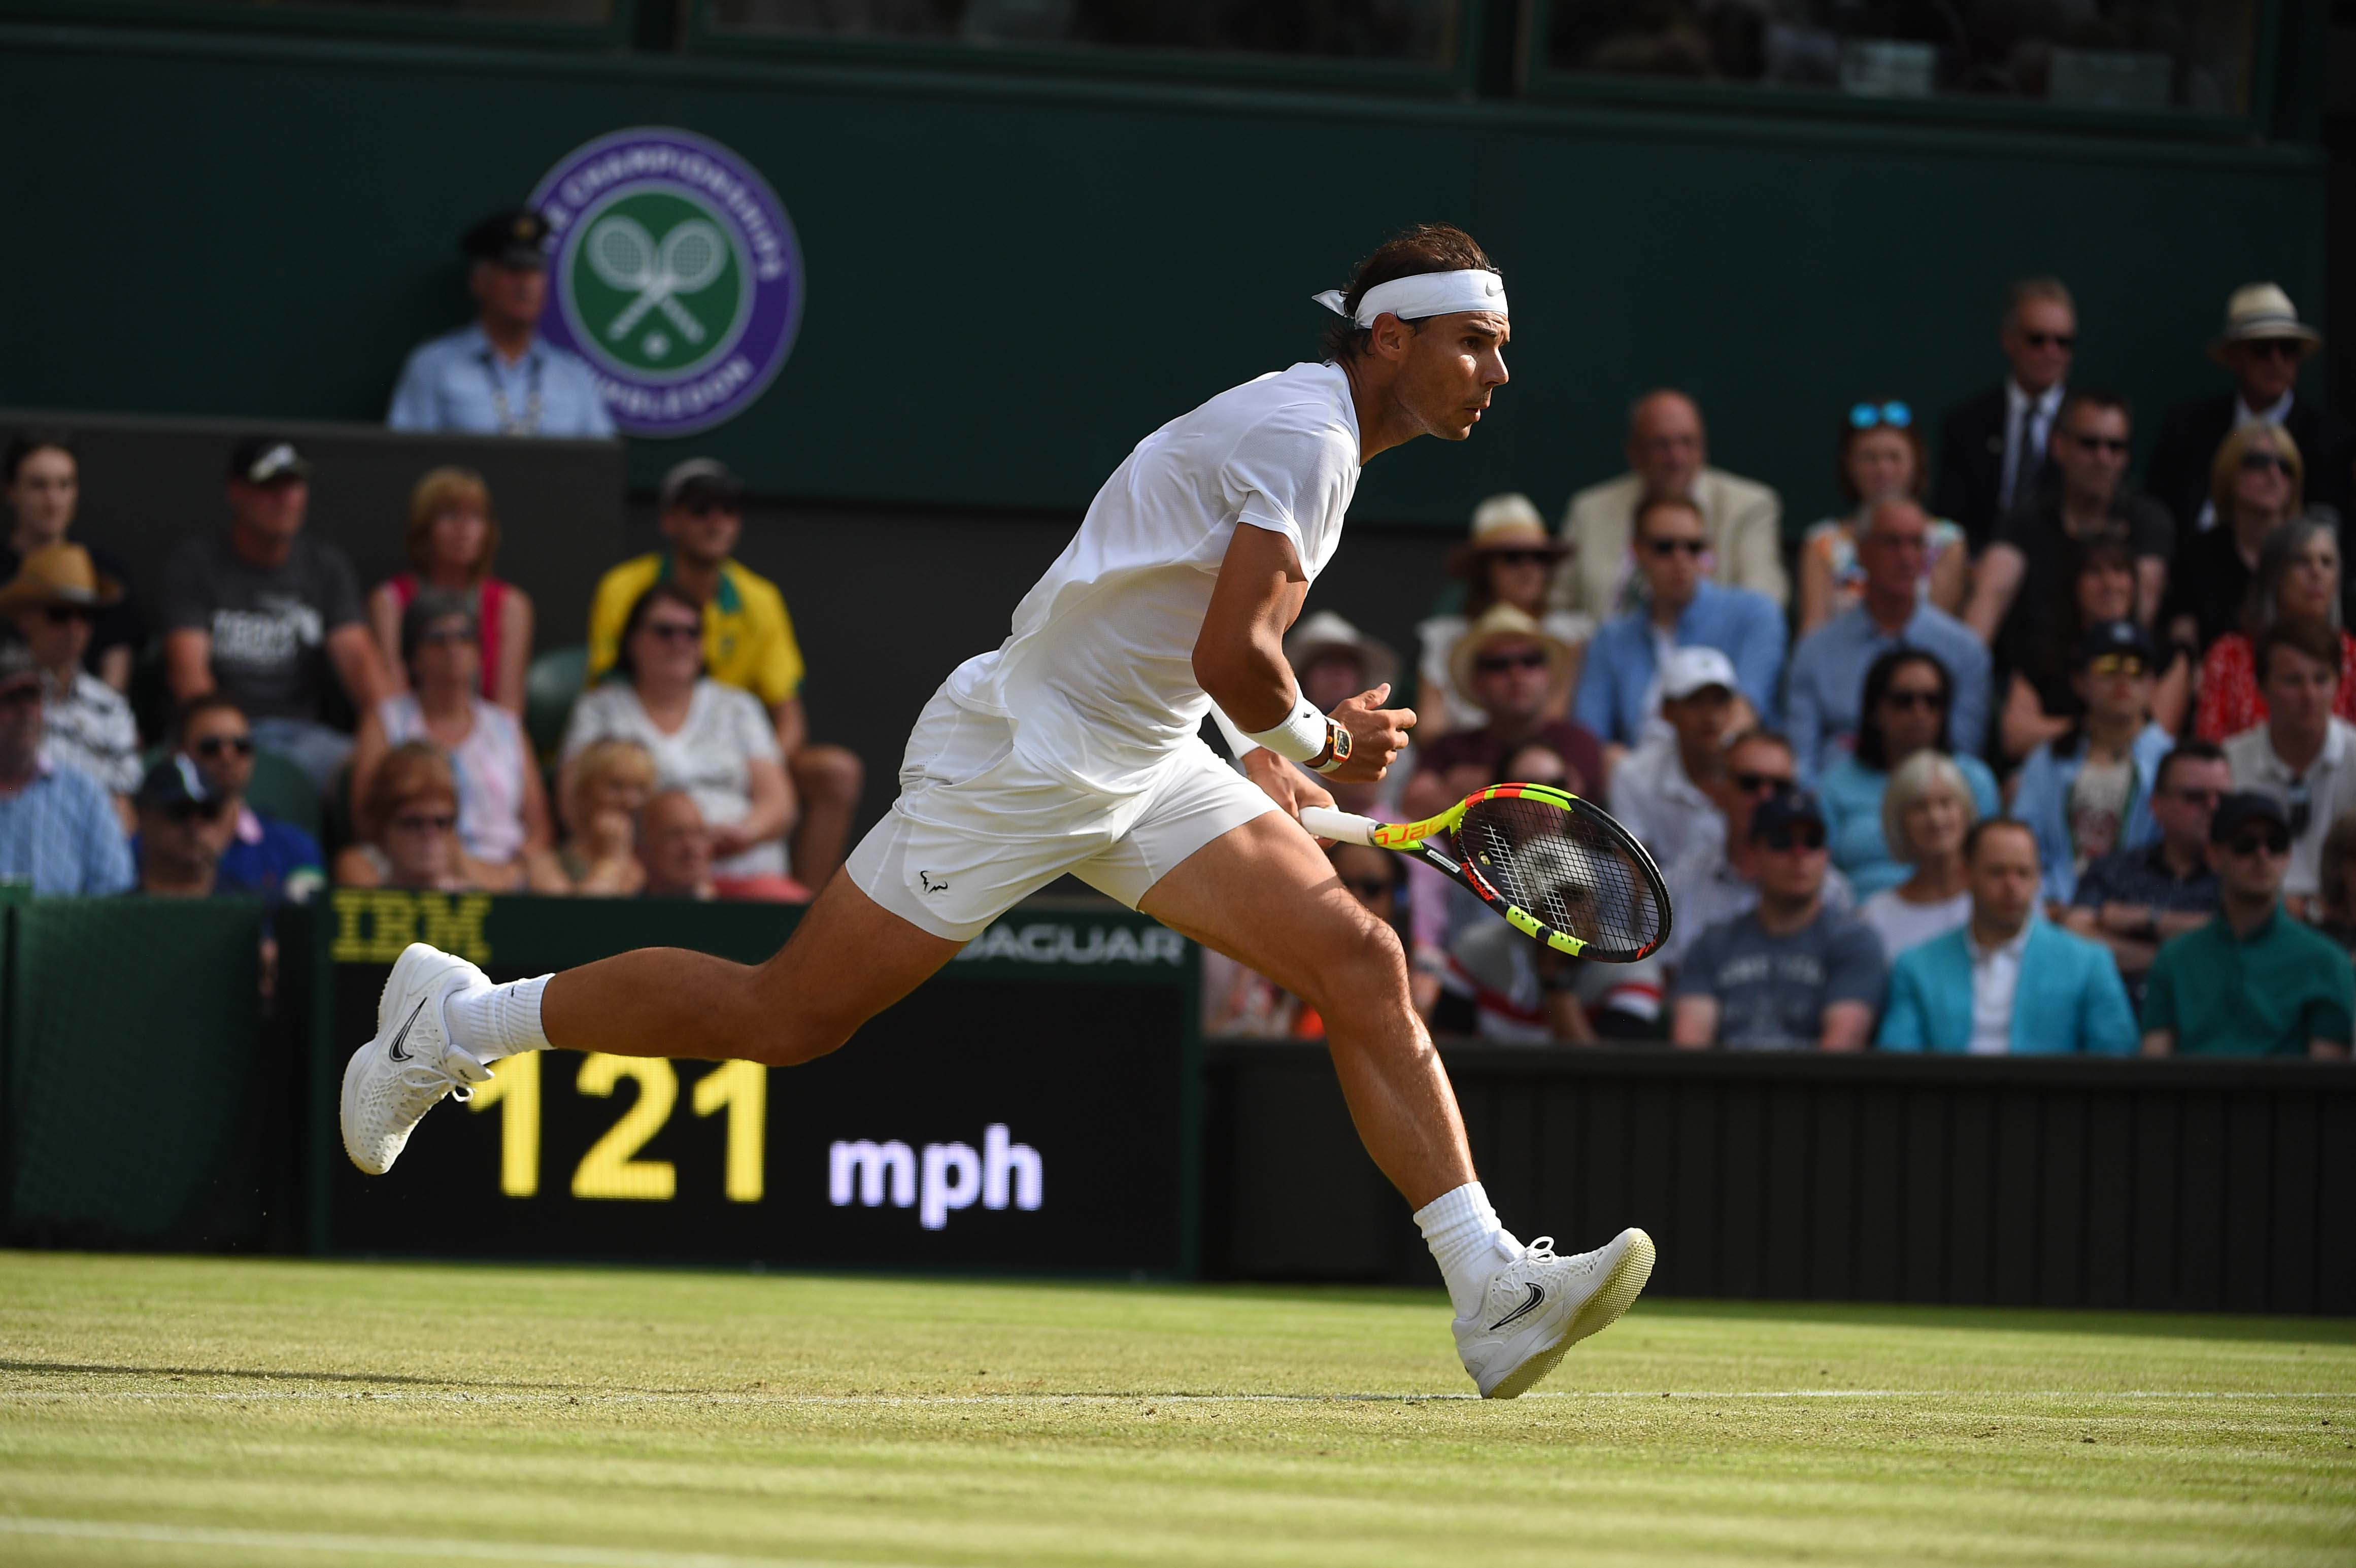 Rafael Nadal running for a shot against Nick Kyrgios at Wimbledon 2019